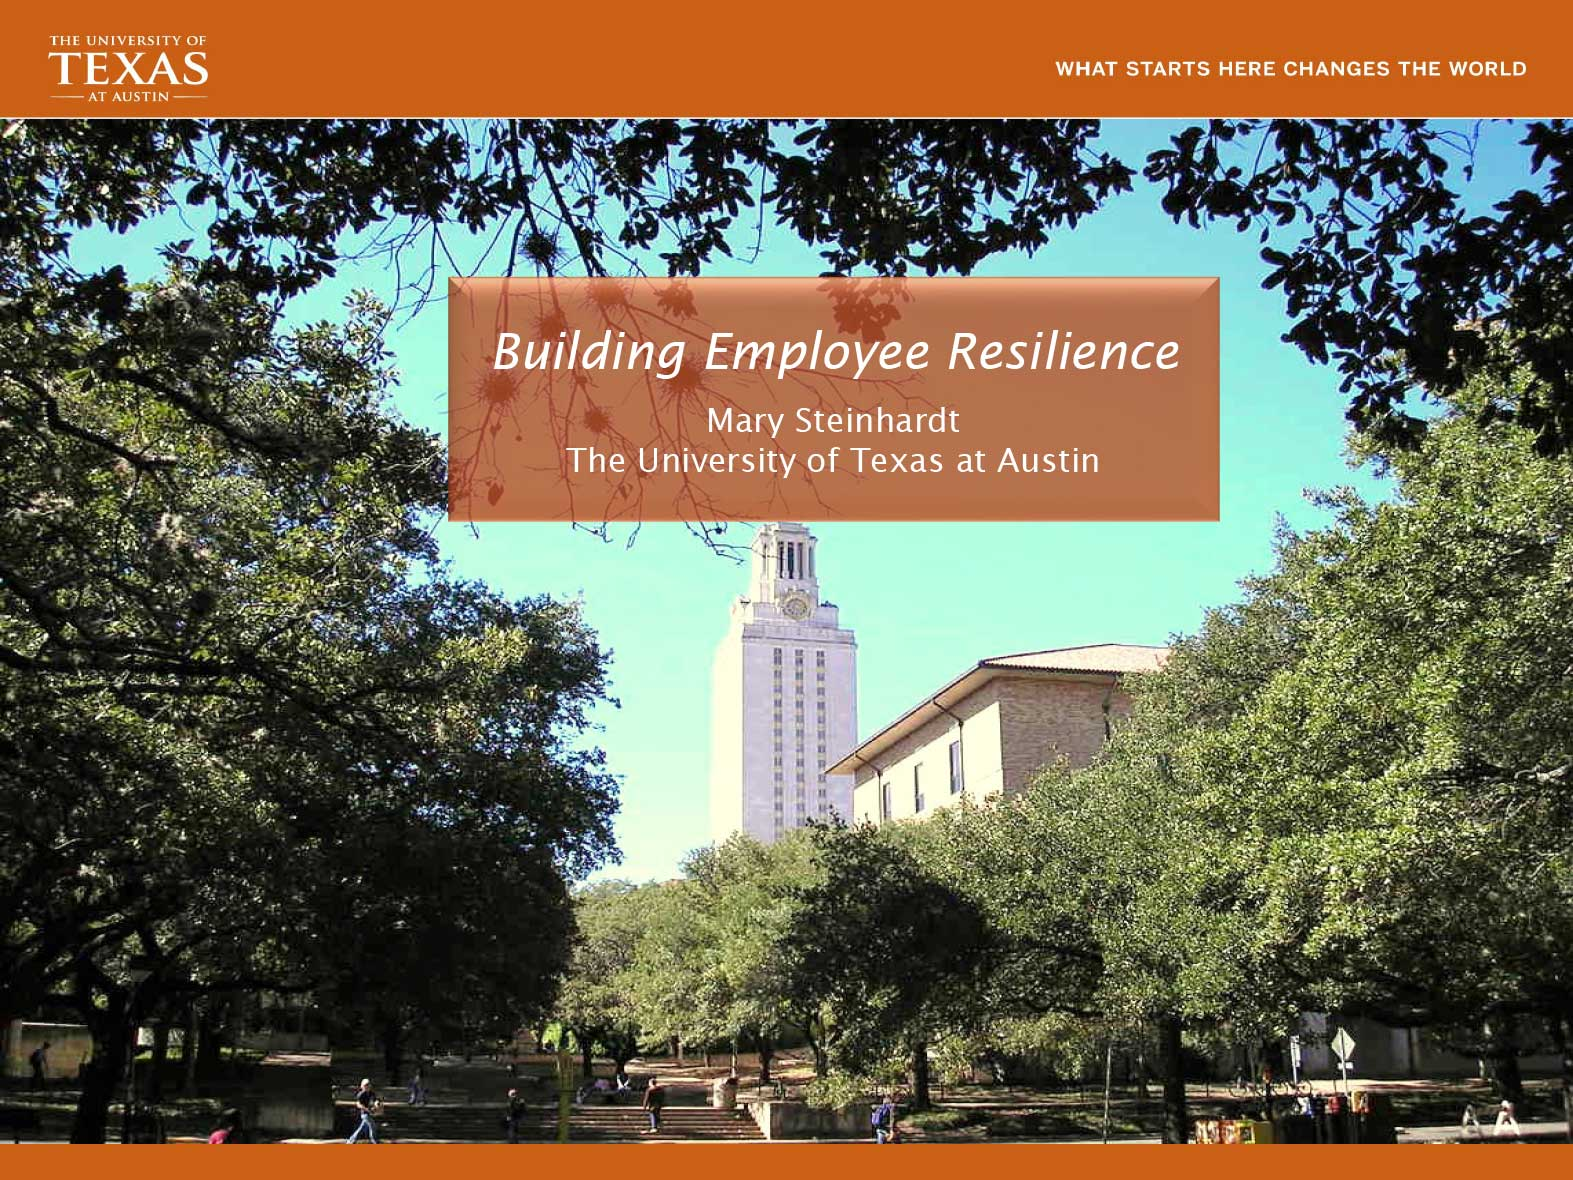 Building Employee Resilience